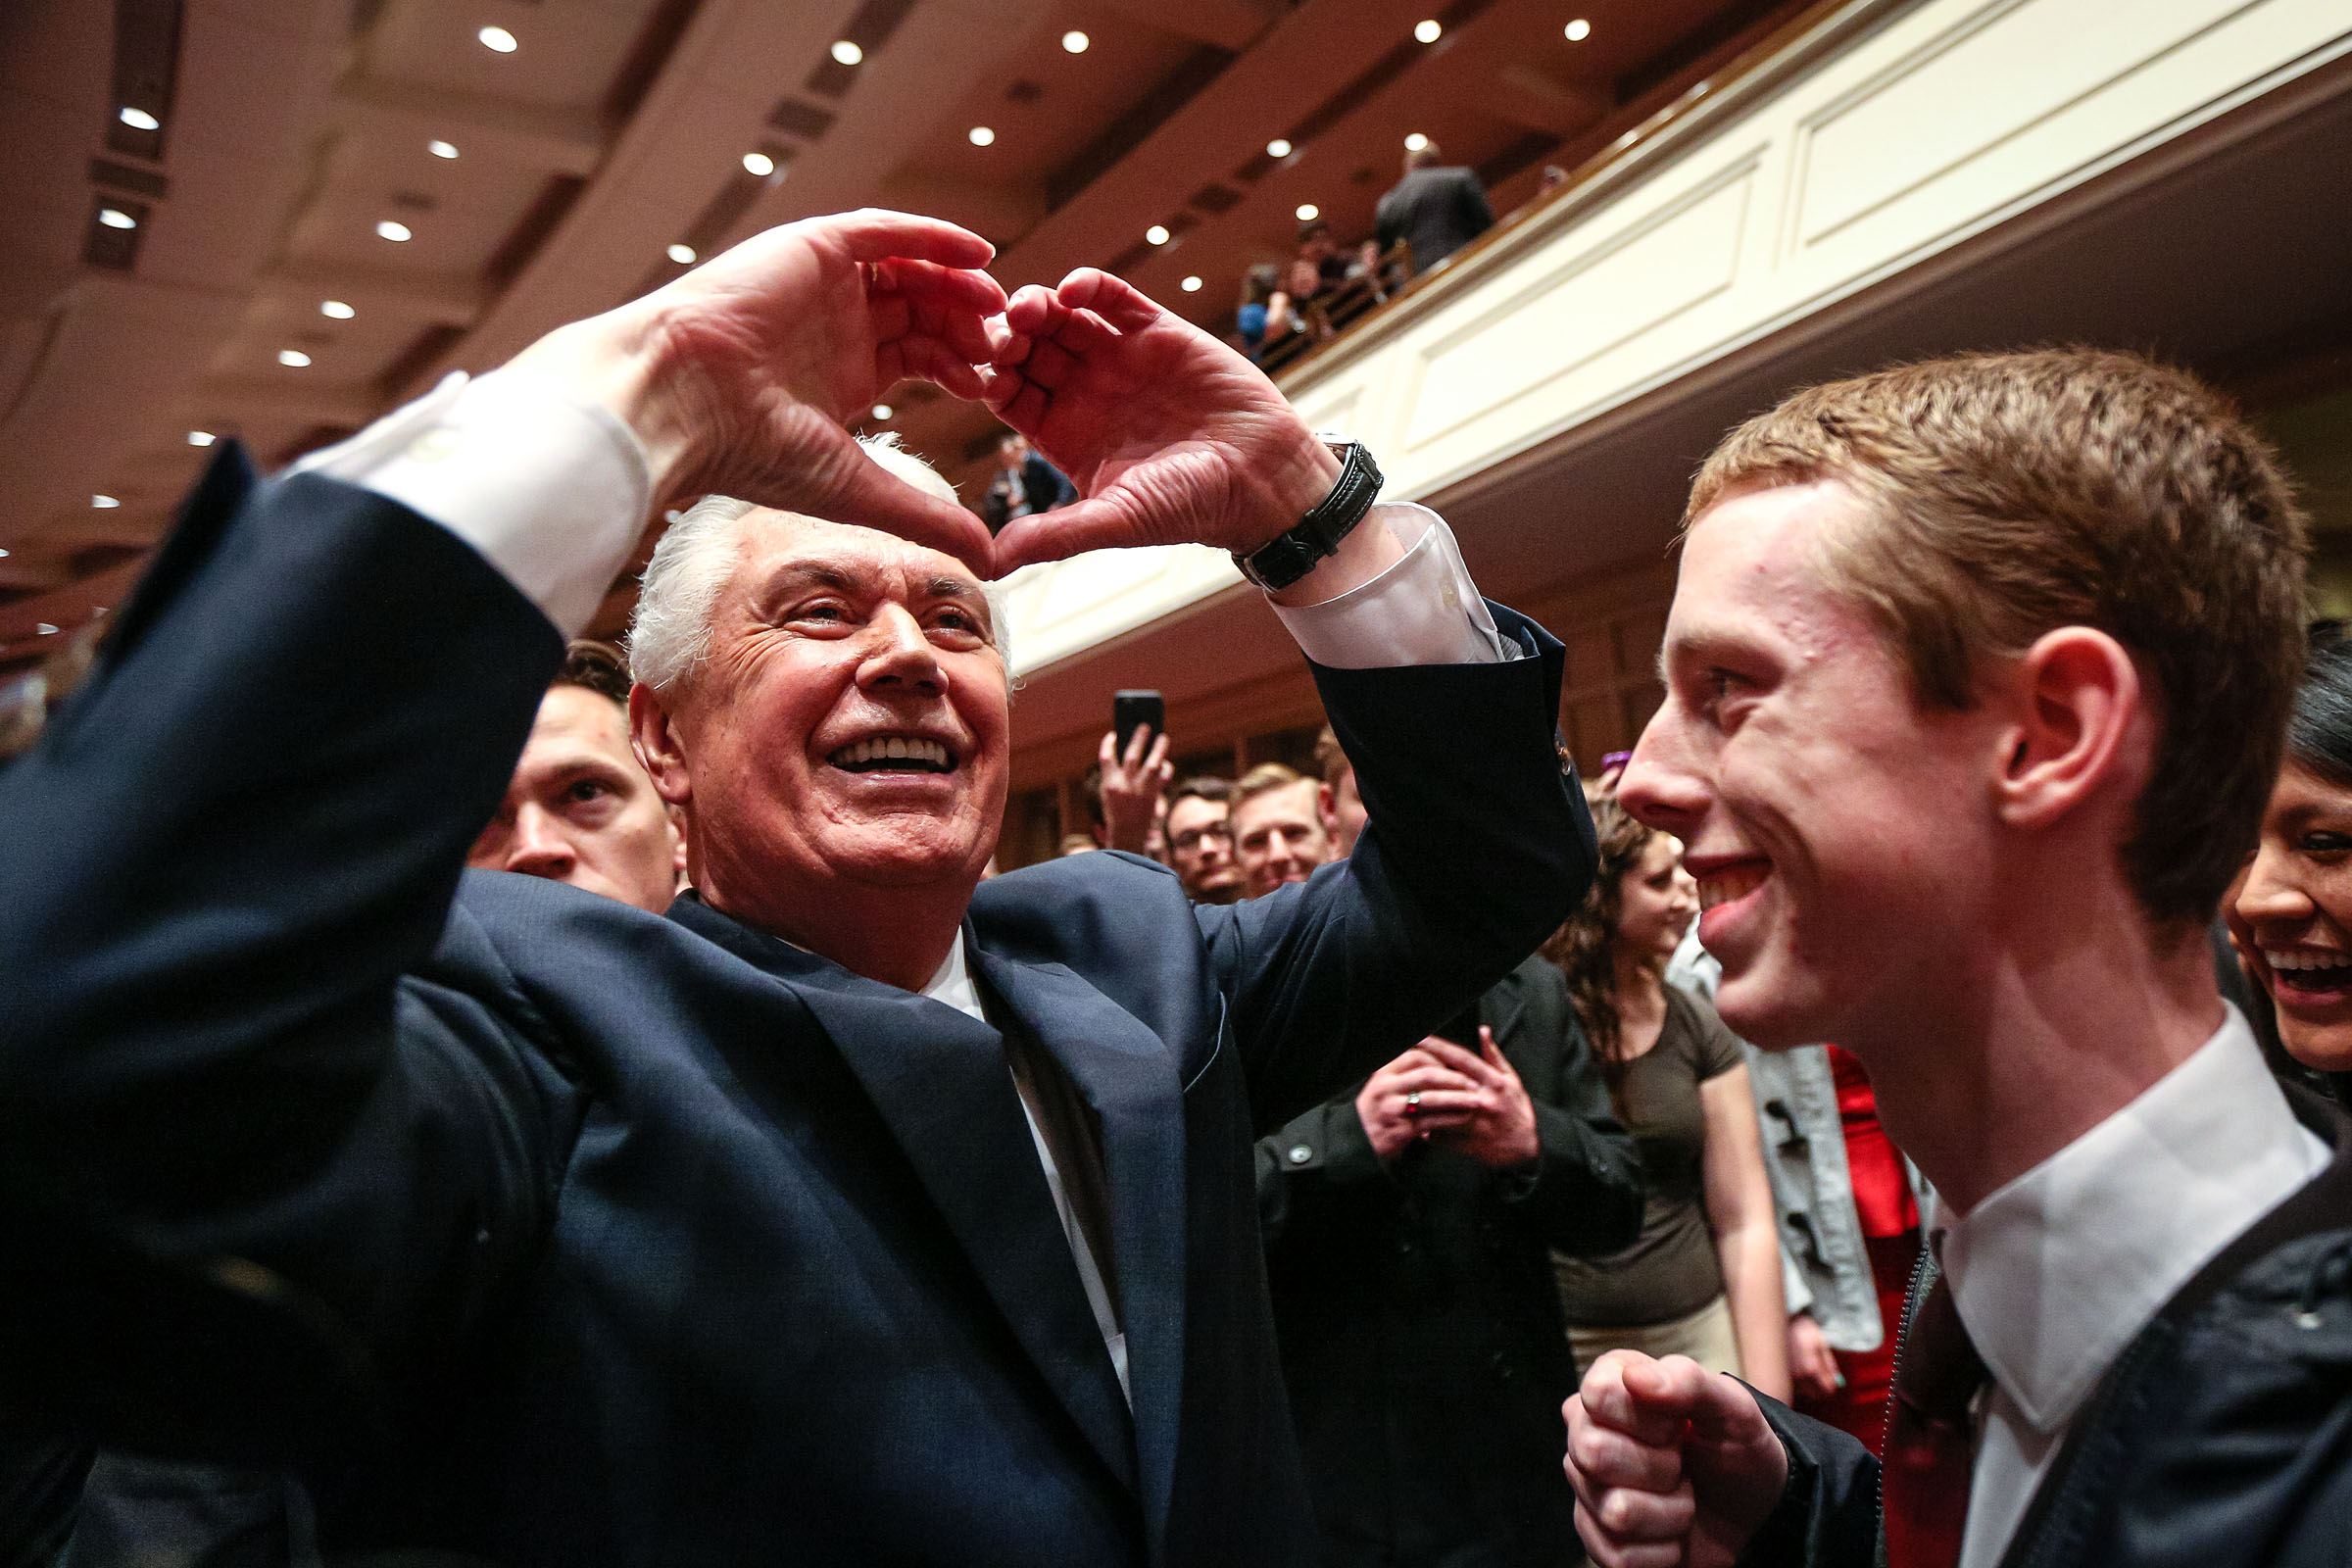 Elder Dieter F. Uchtdorf makes a heart shape with his hands to the devotional goers as he exits through the main seating area after the World Wide Devotional for Young Adults hosted by Elder Dieter F. Uchtdorf at the Conference Center in Salt Lake Sunday, Jan. 14, 2018.